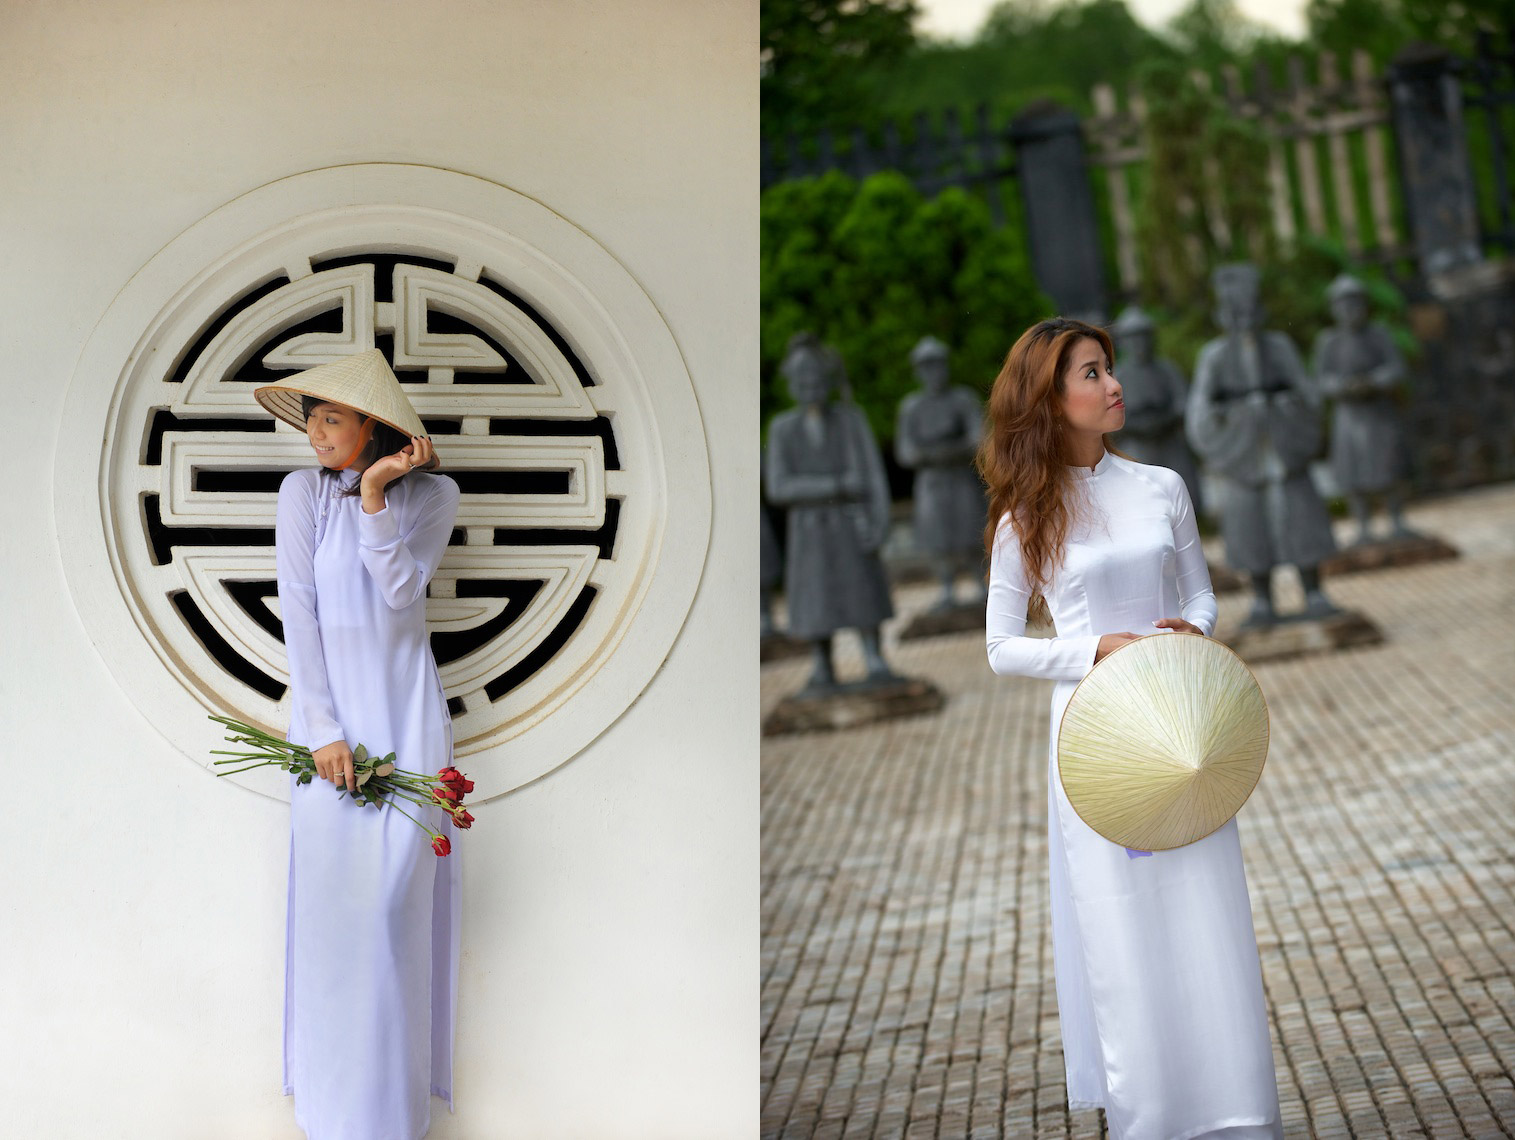 ao-dai-girls.jpg